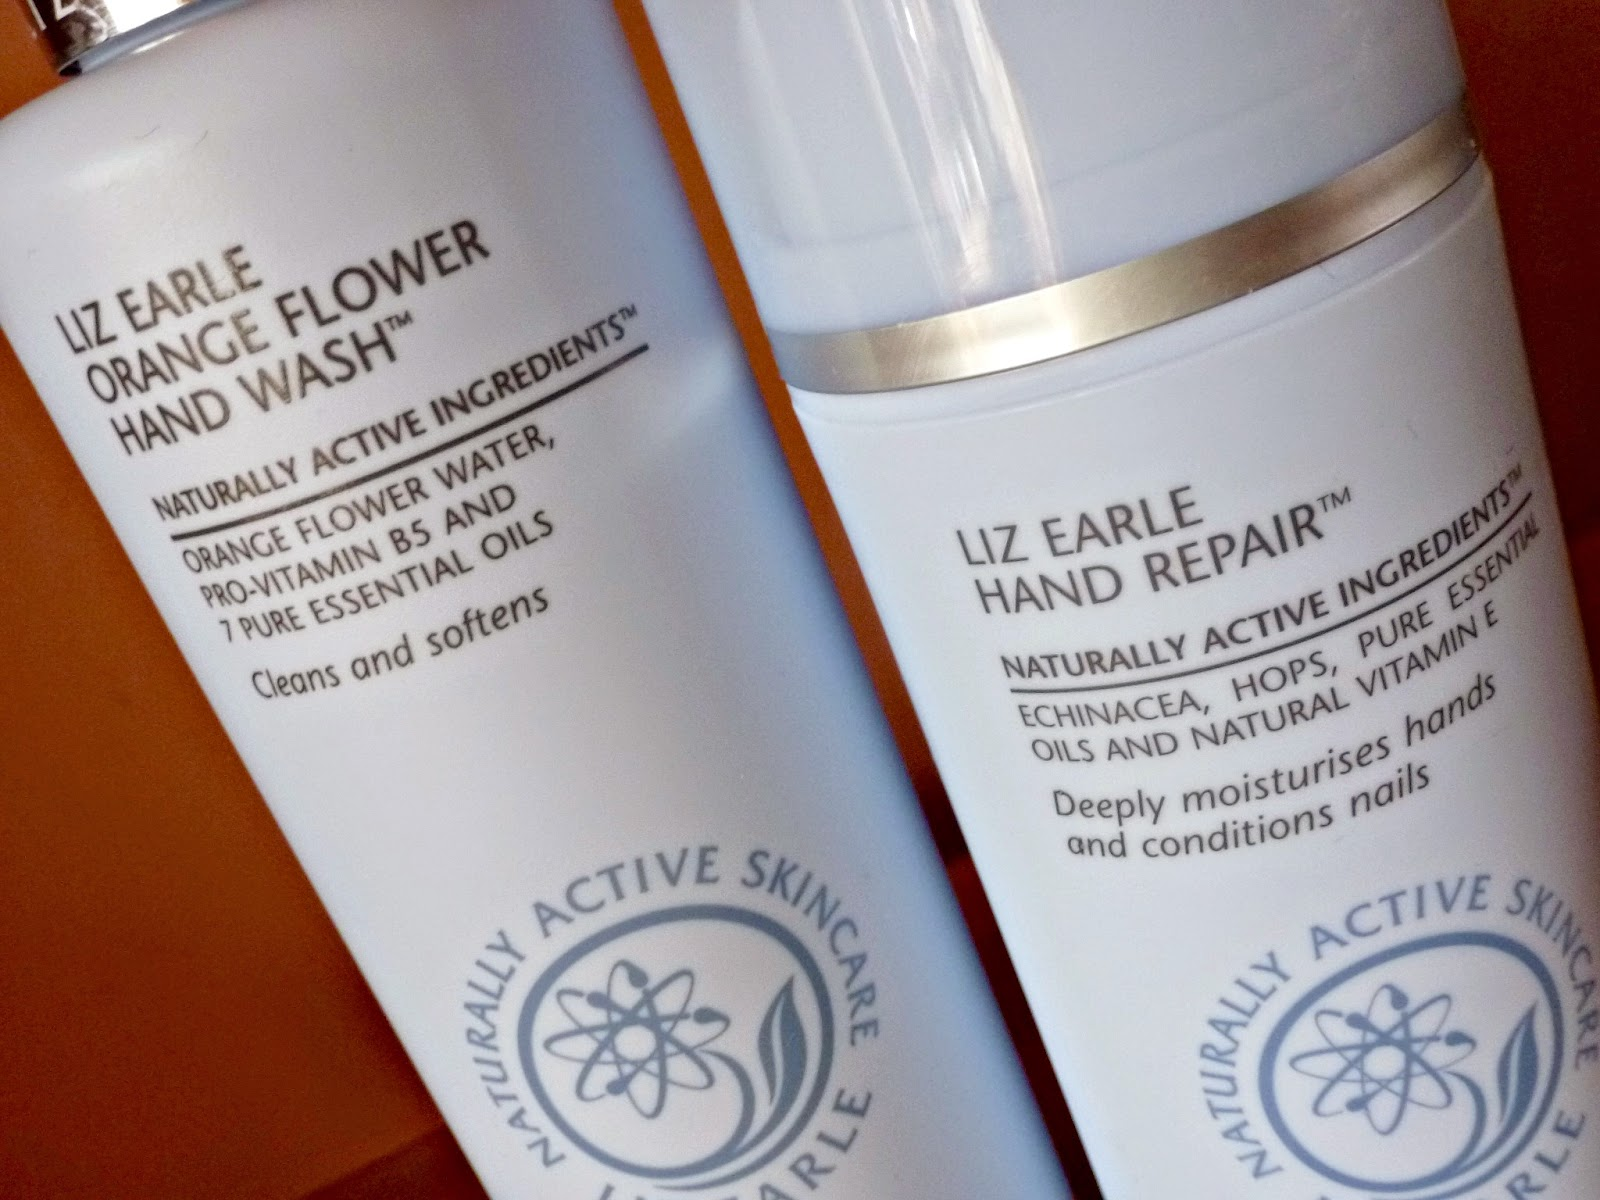 A picture of Liz Earle Orange Flower Hand Wash and  Liz Earle Hand Repair